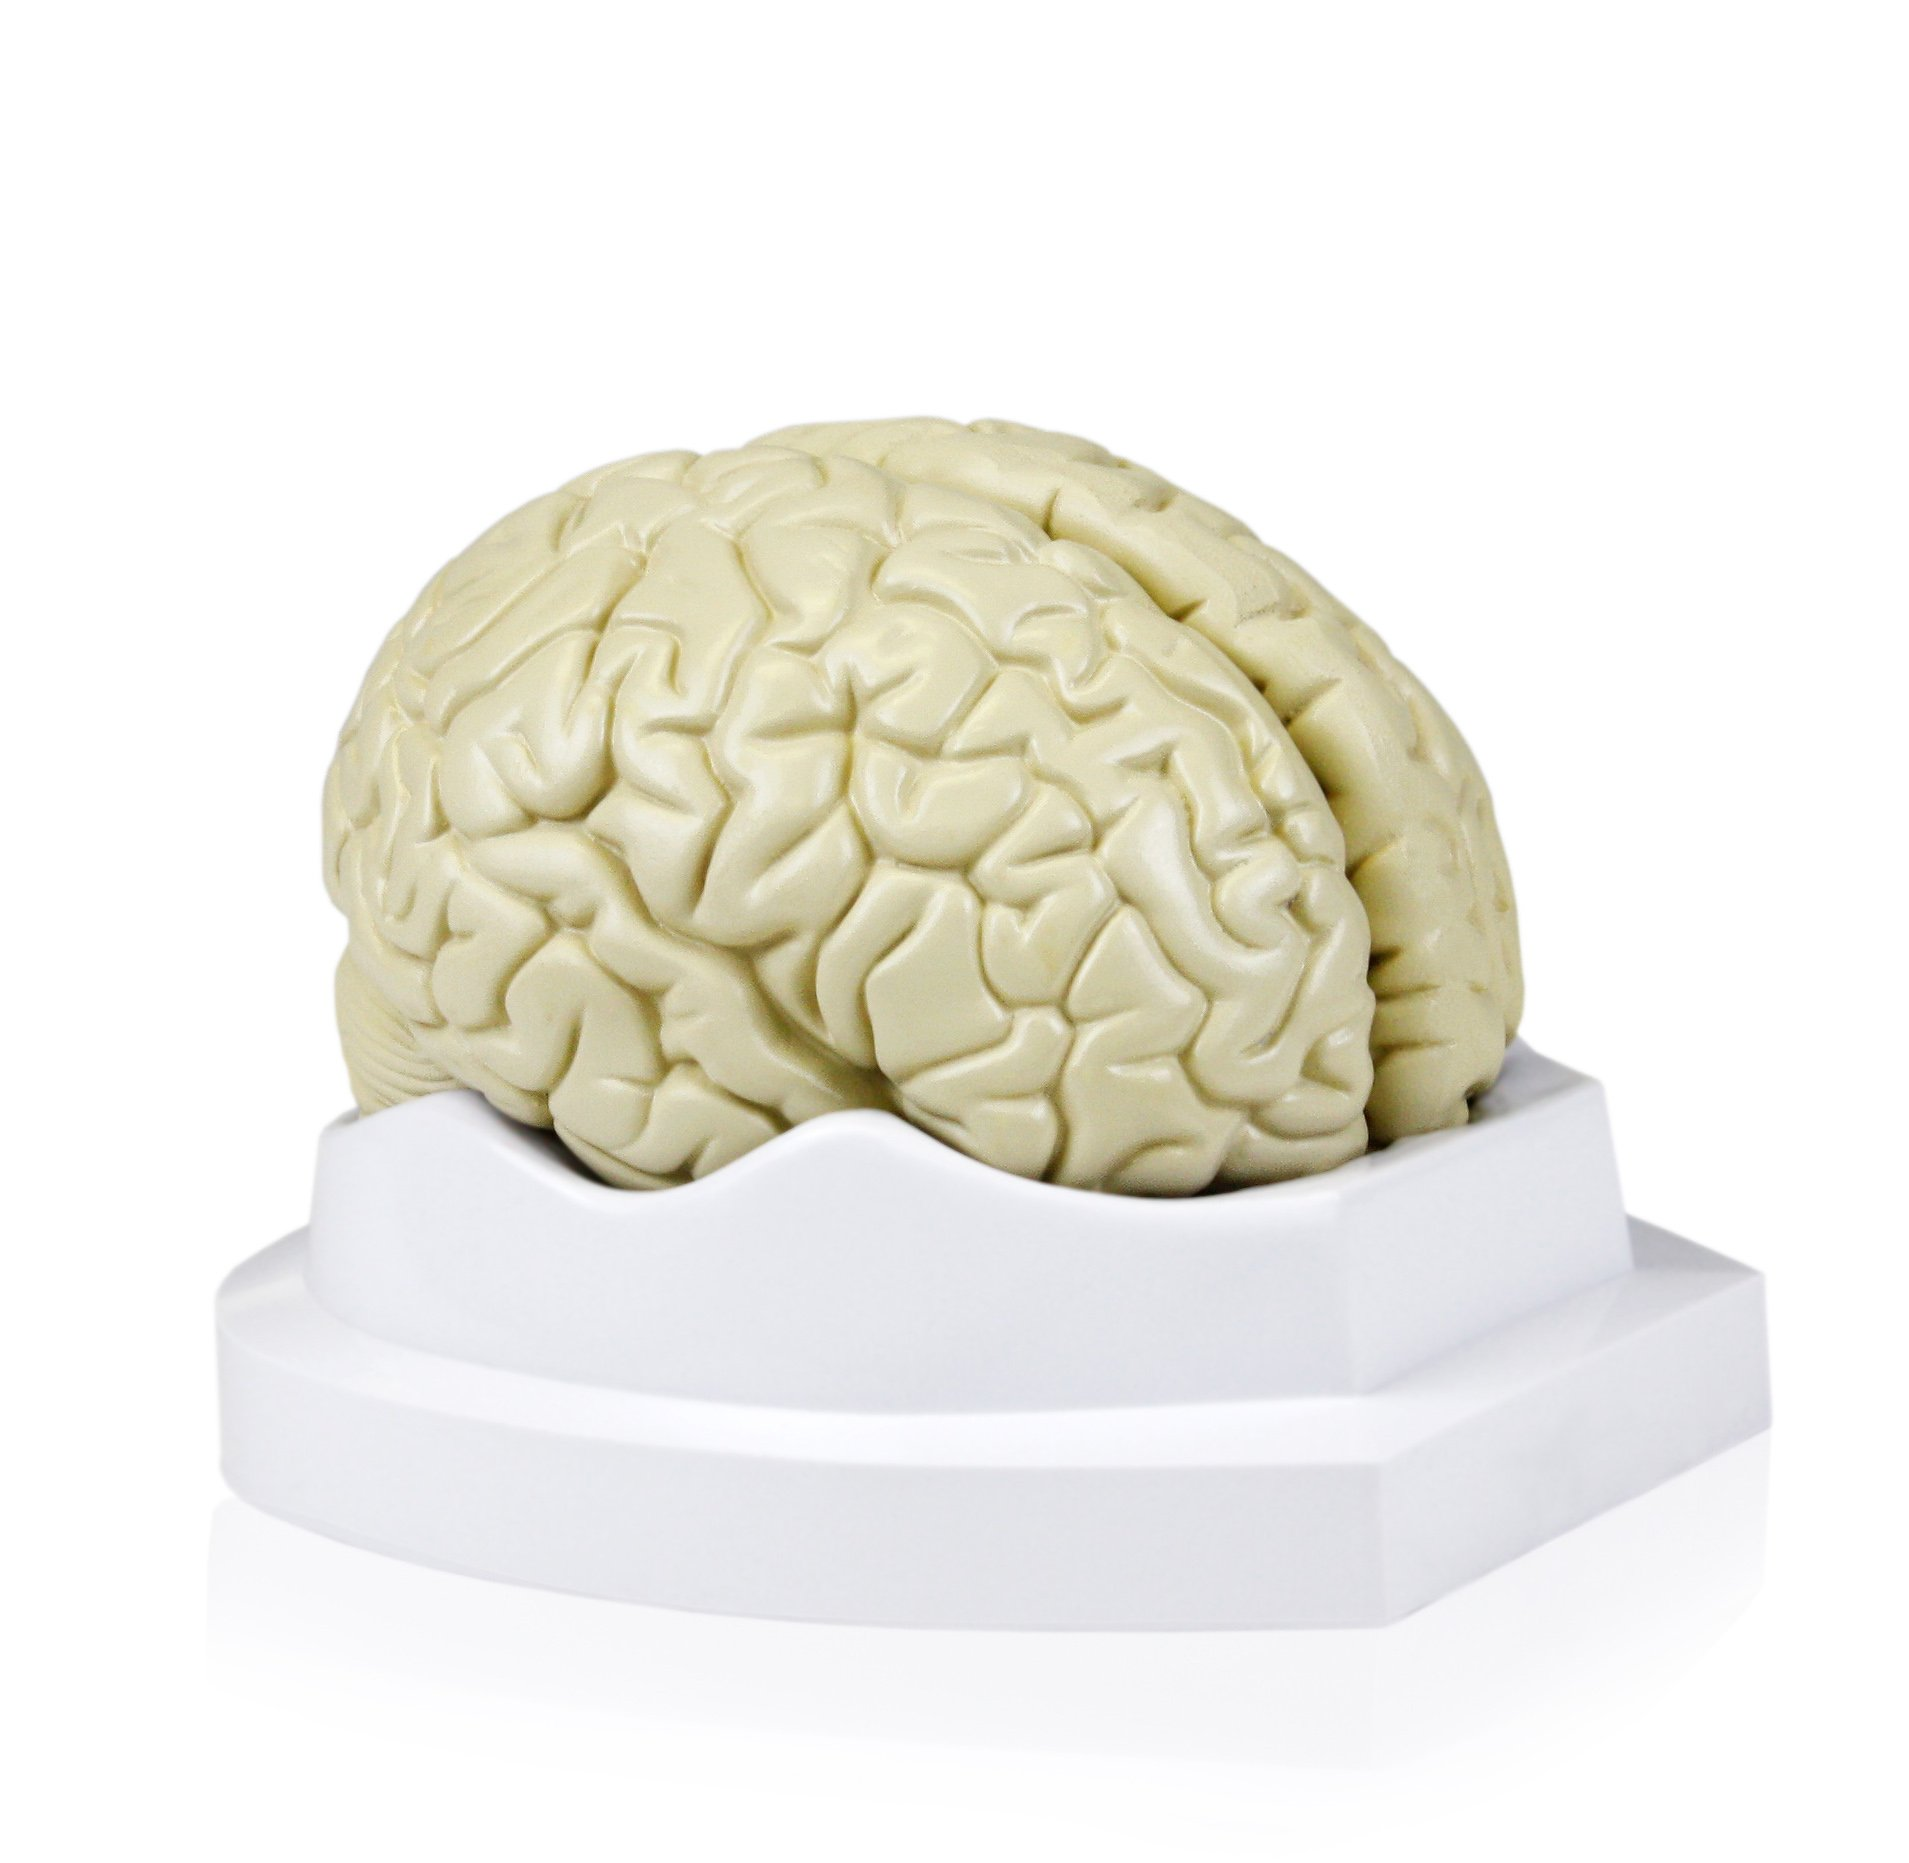 Cheap Size Human Brain, find Size Human Brain deals on line at ...